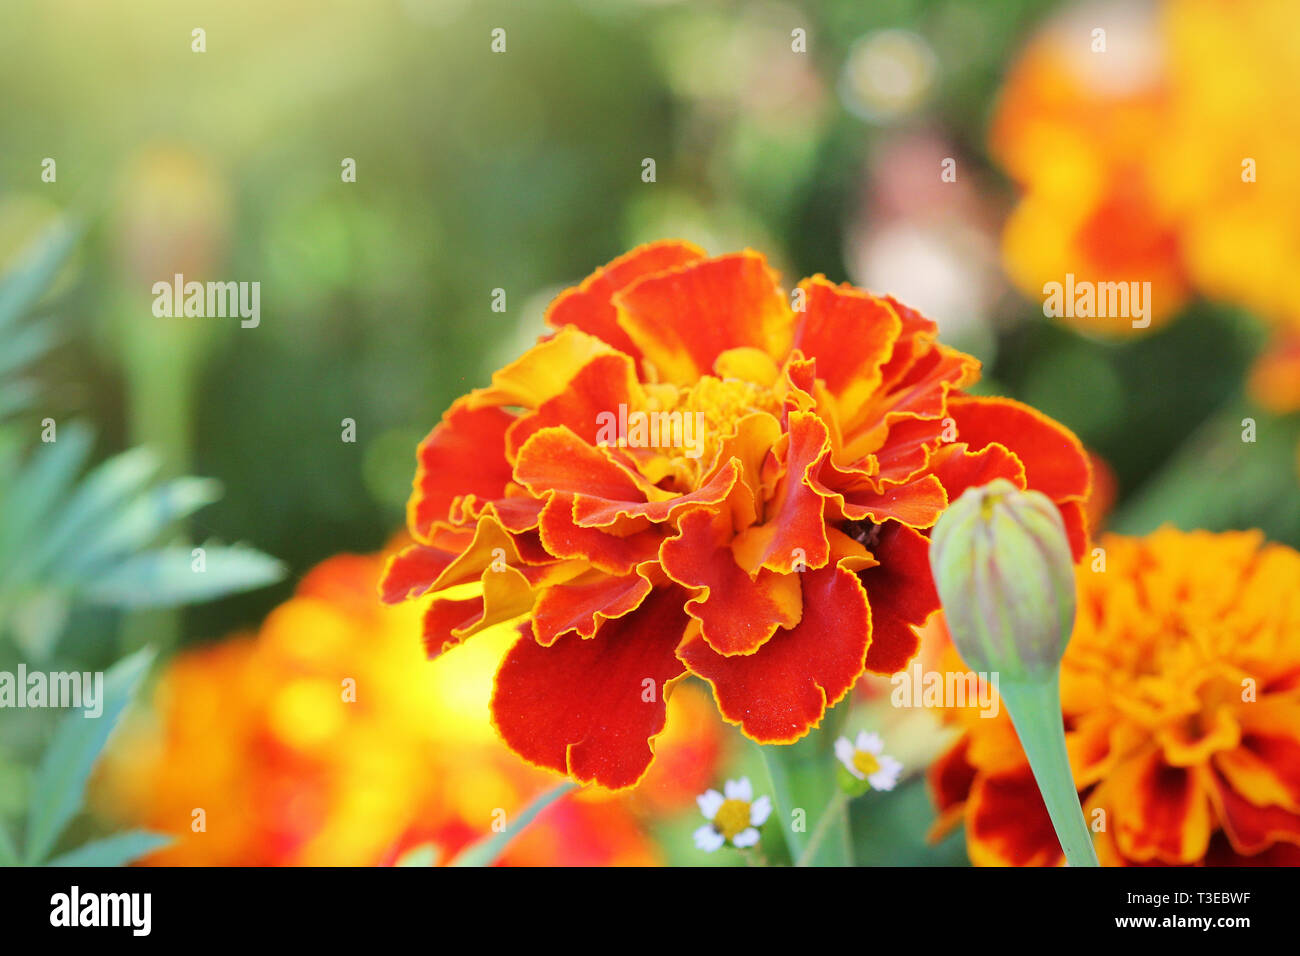 Orange beautiful Marigold flower (Tagetes erecta, Mexican, Aztec or African marigold) in the garden. Stock Photo